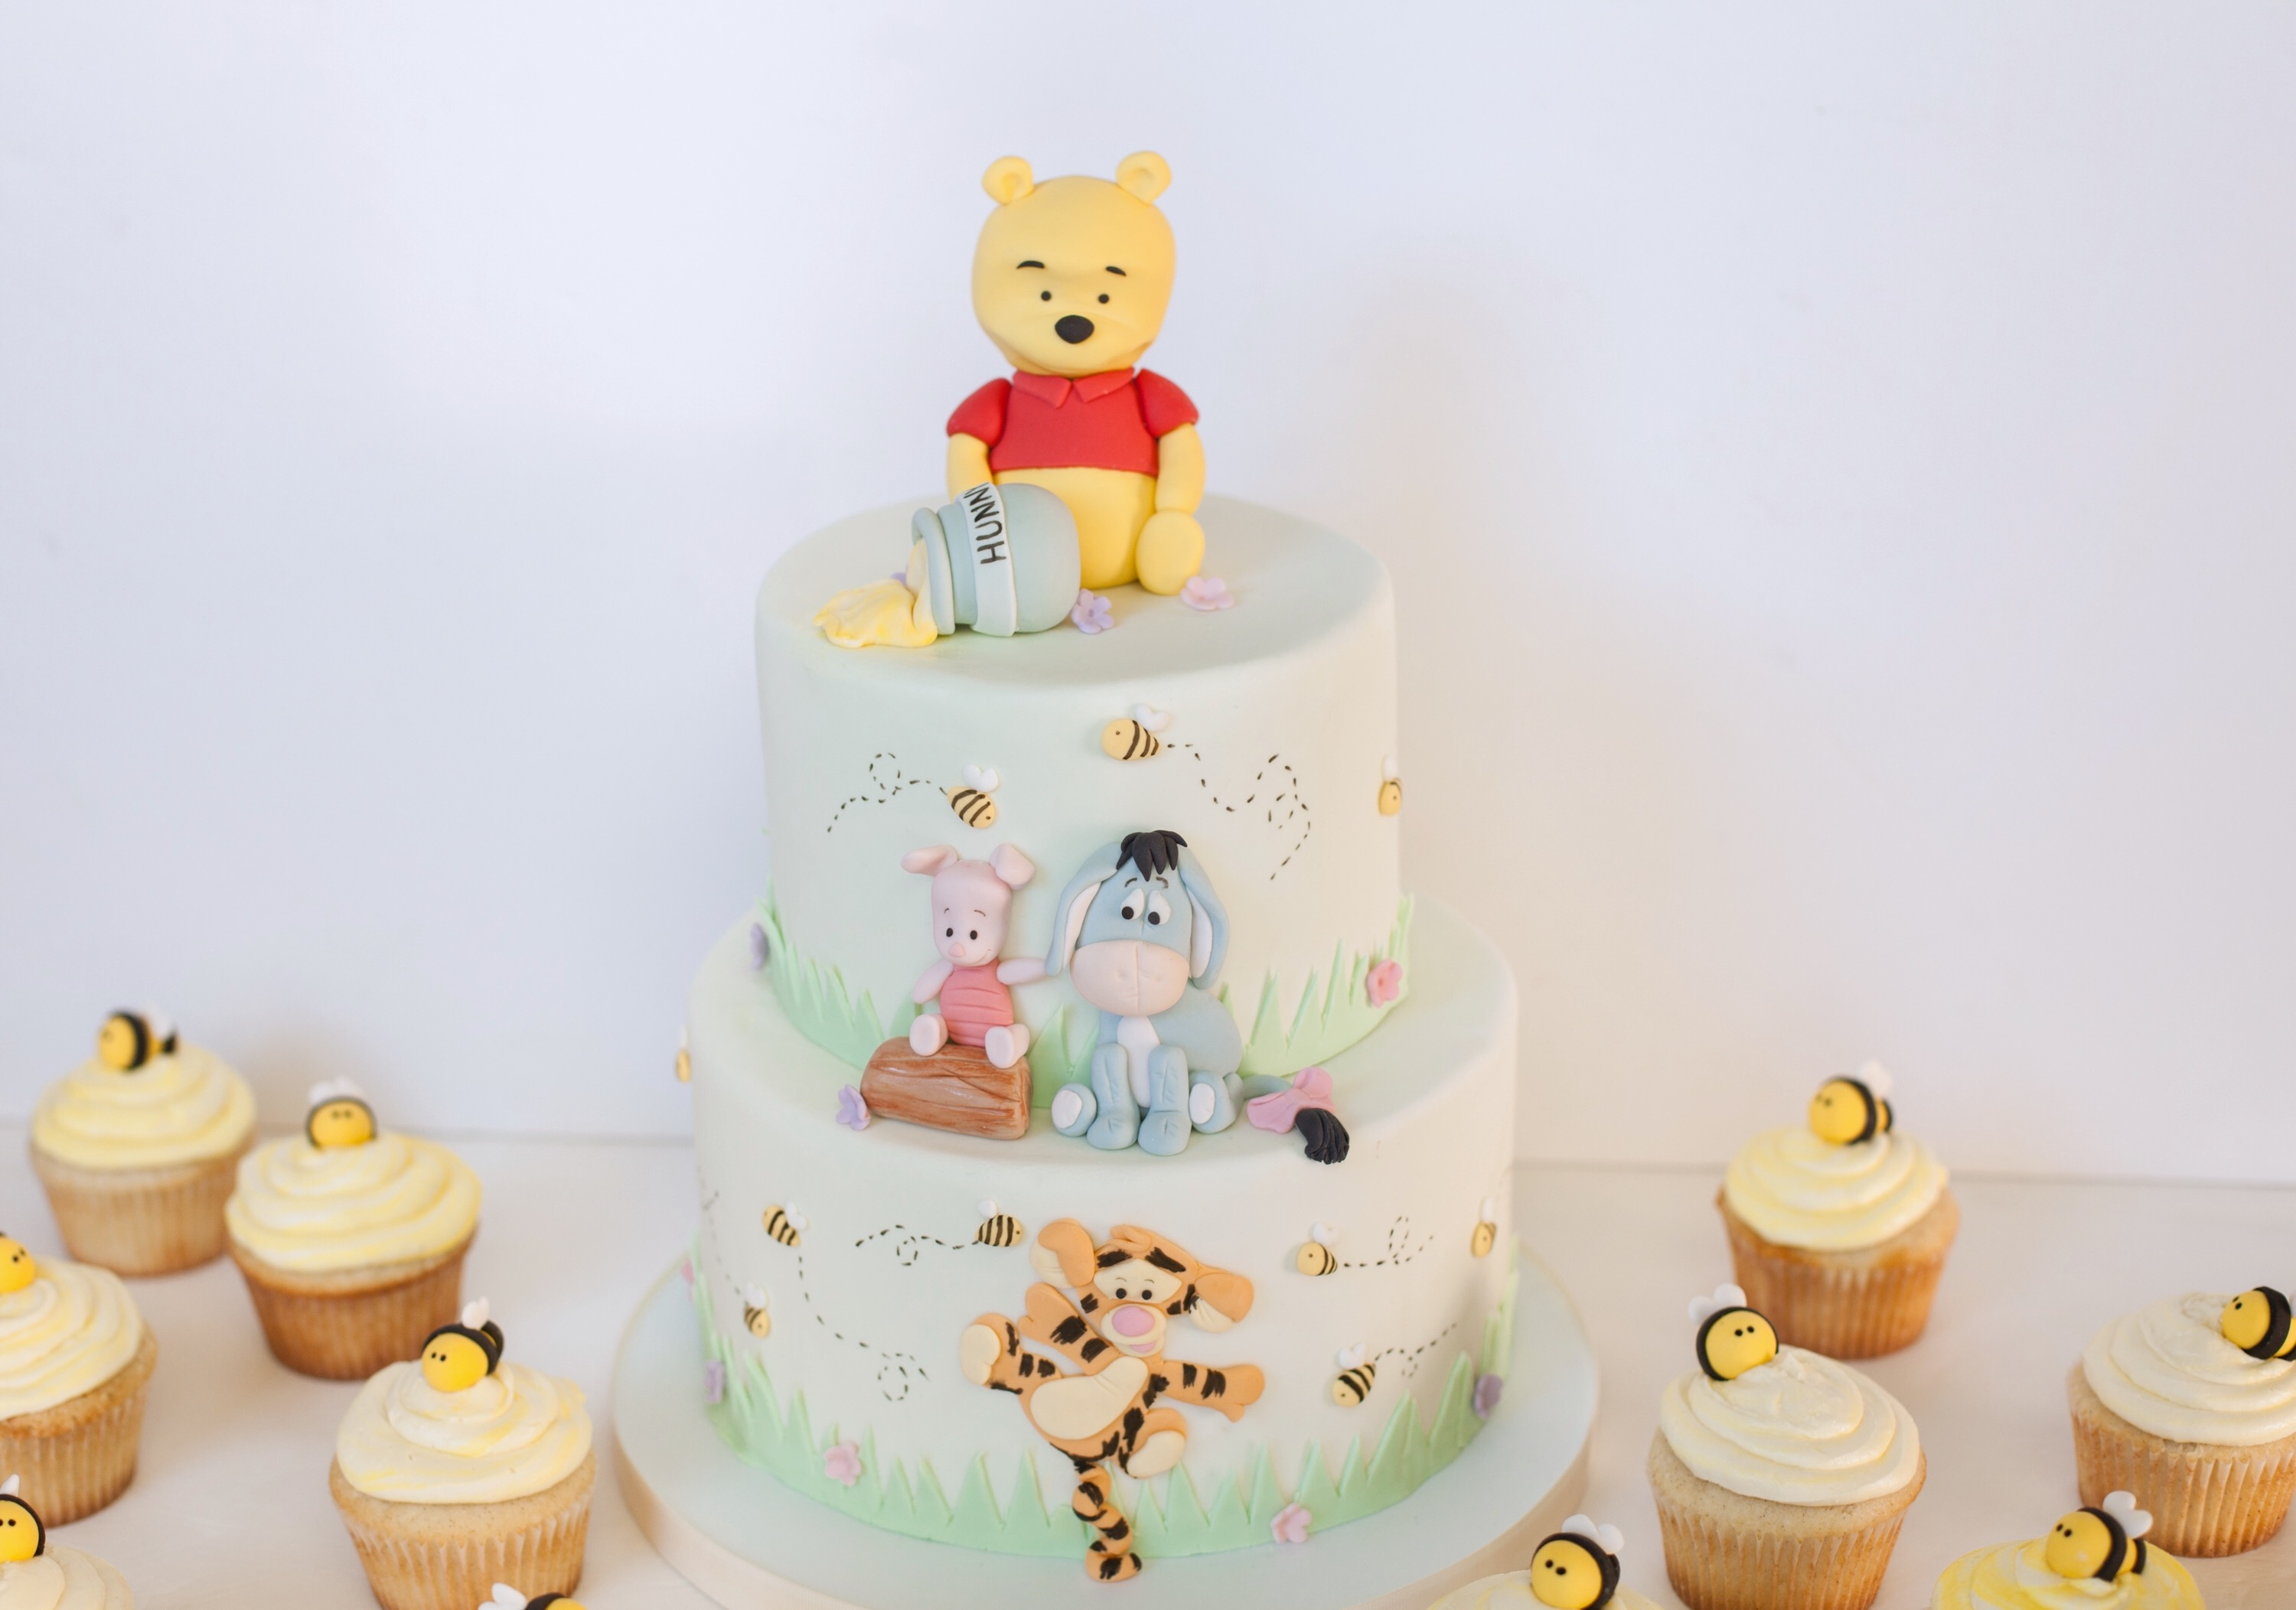 Winnie the Pooh Birthday cake and cupcakes